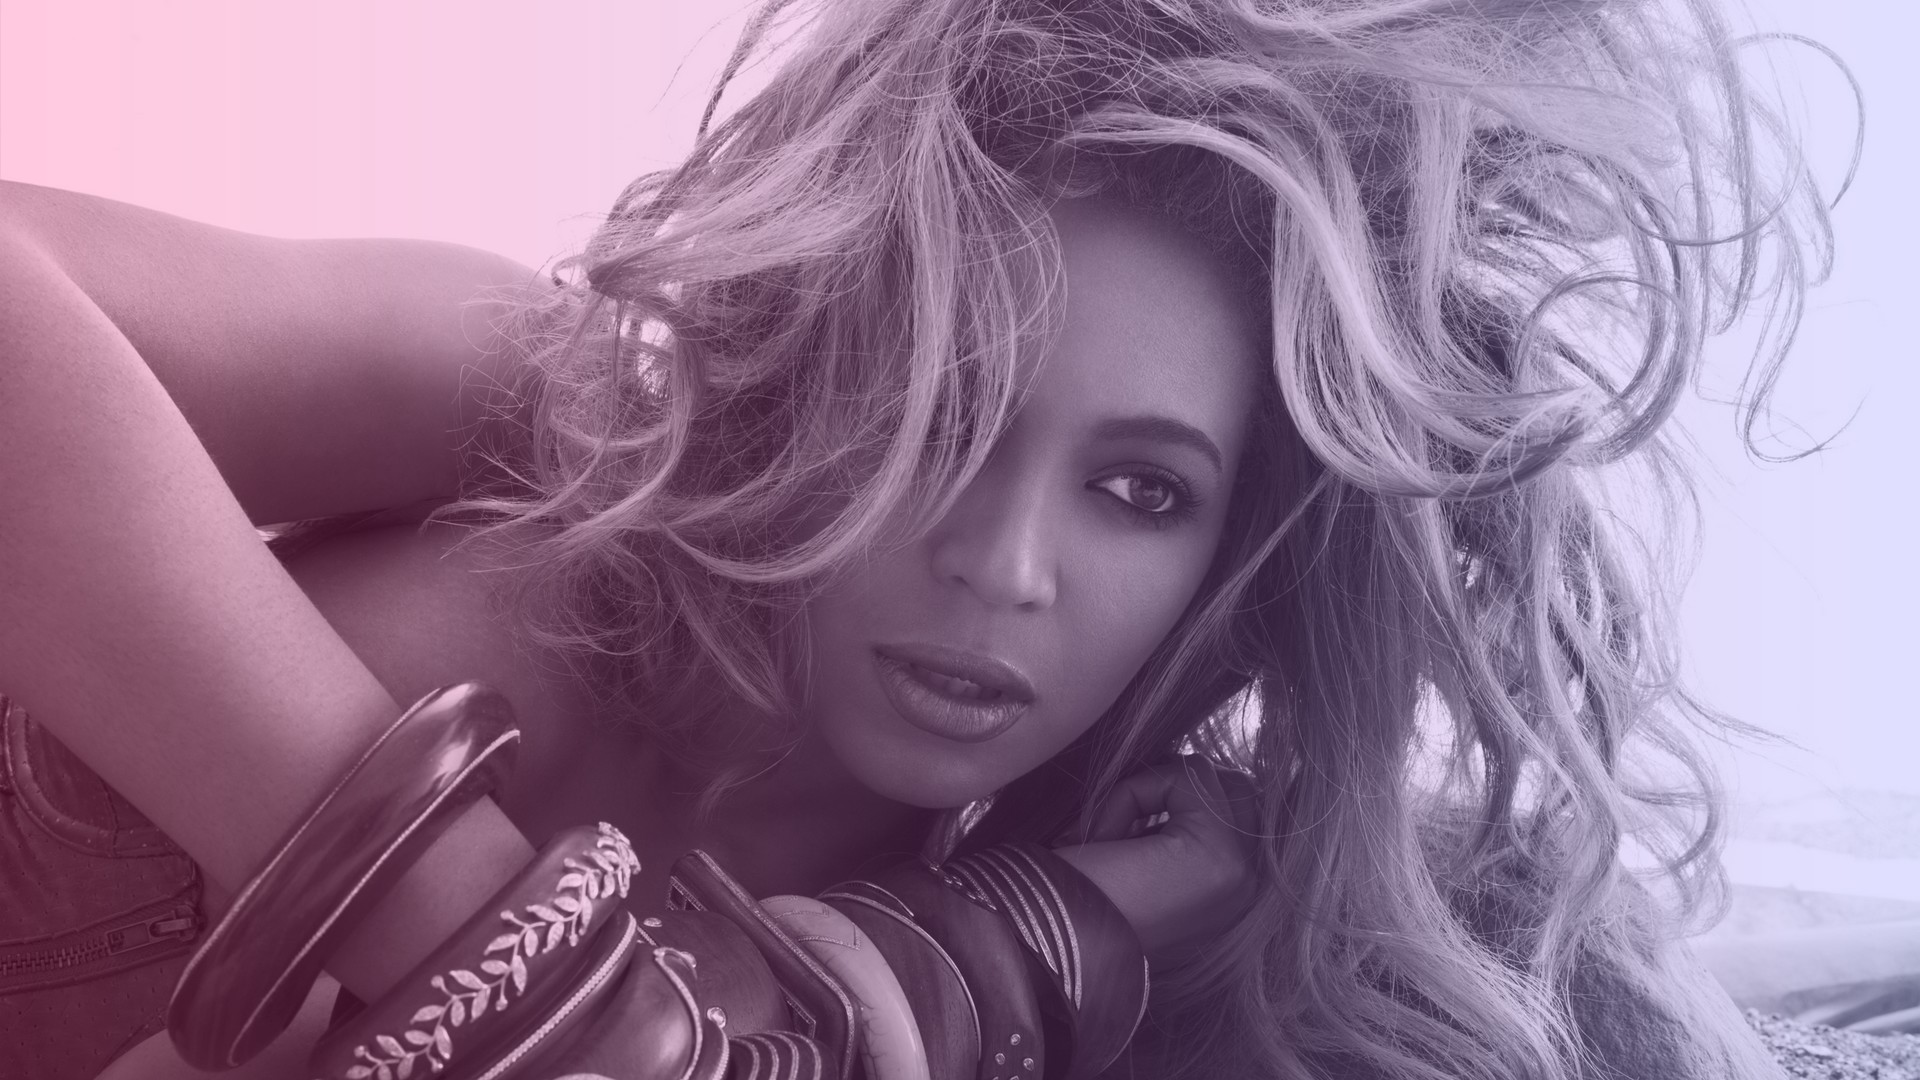 Beyonce Wallpapers High Quality Download Free